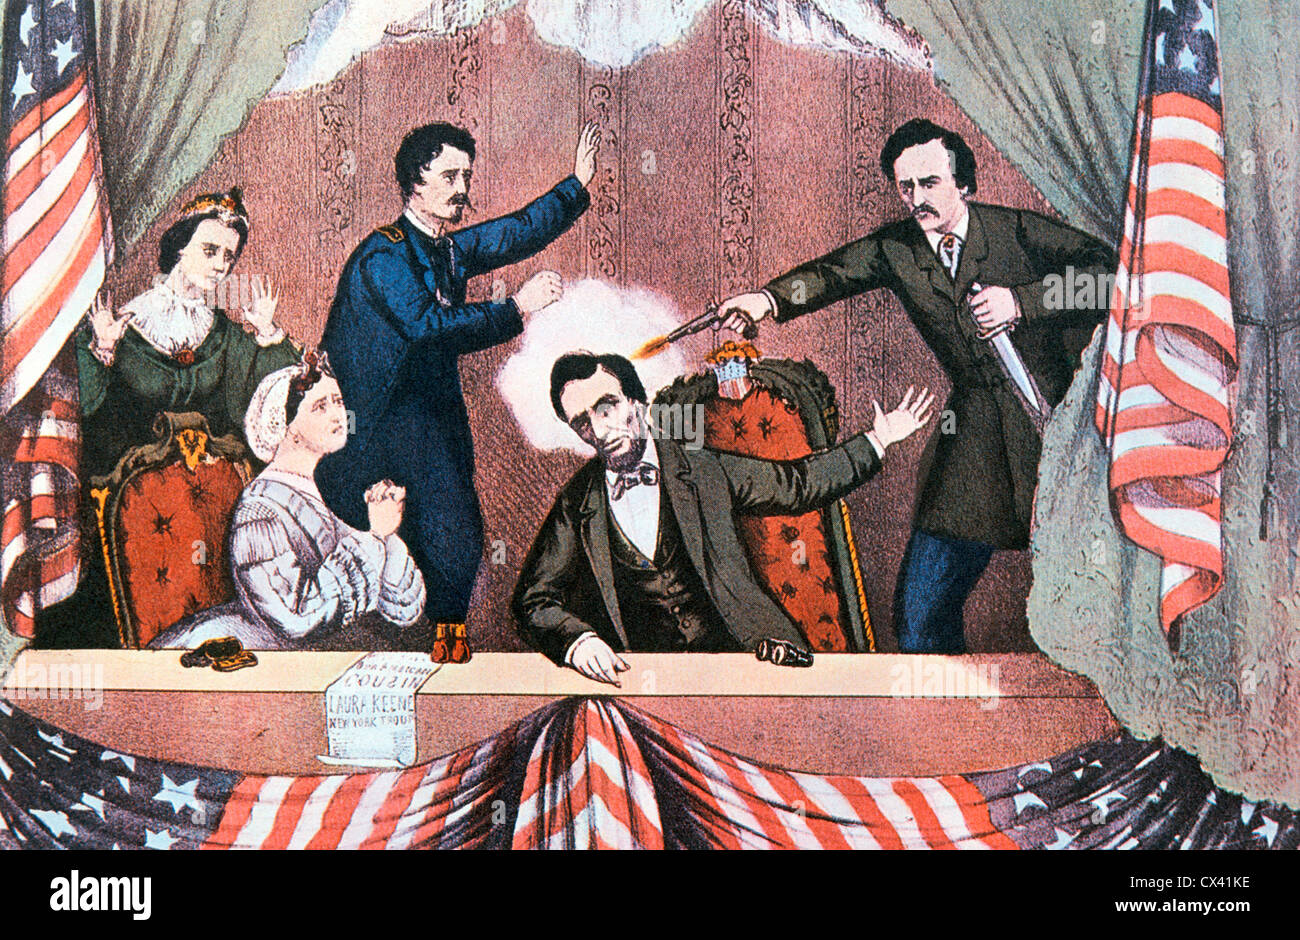 the assassination of abraham lincoln With the assassination of president abraham lincoln, andrew johnson became the 17th president of the united states (1865-1869), an old-fashioned southern jacksonian.